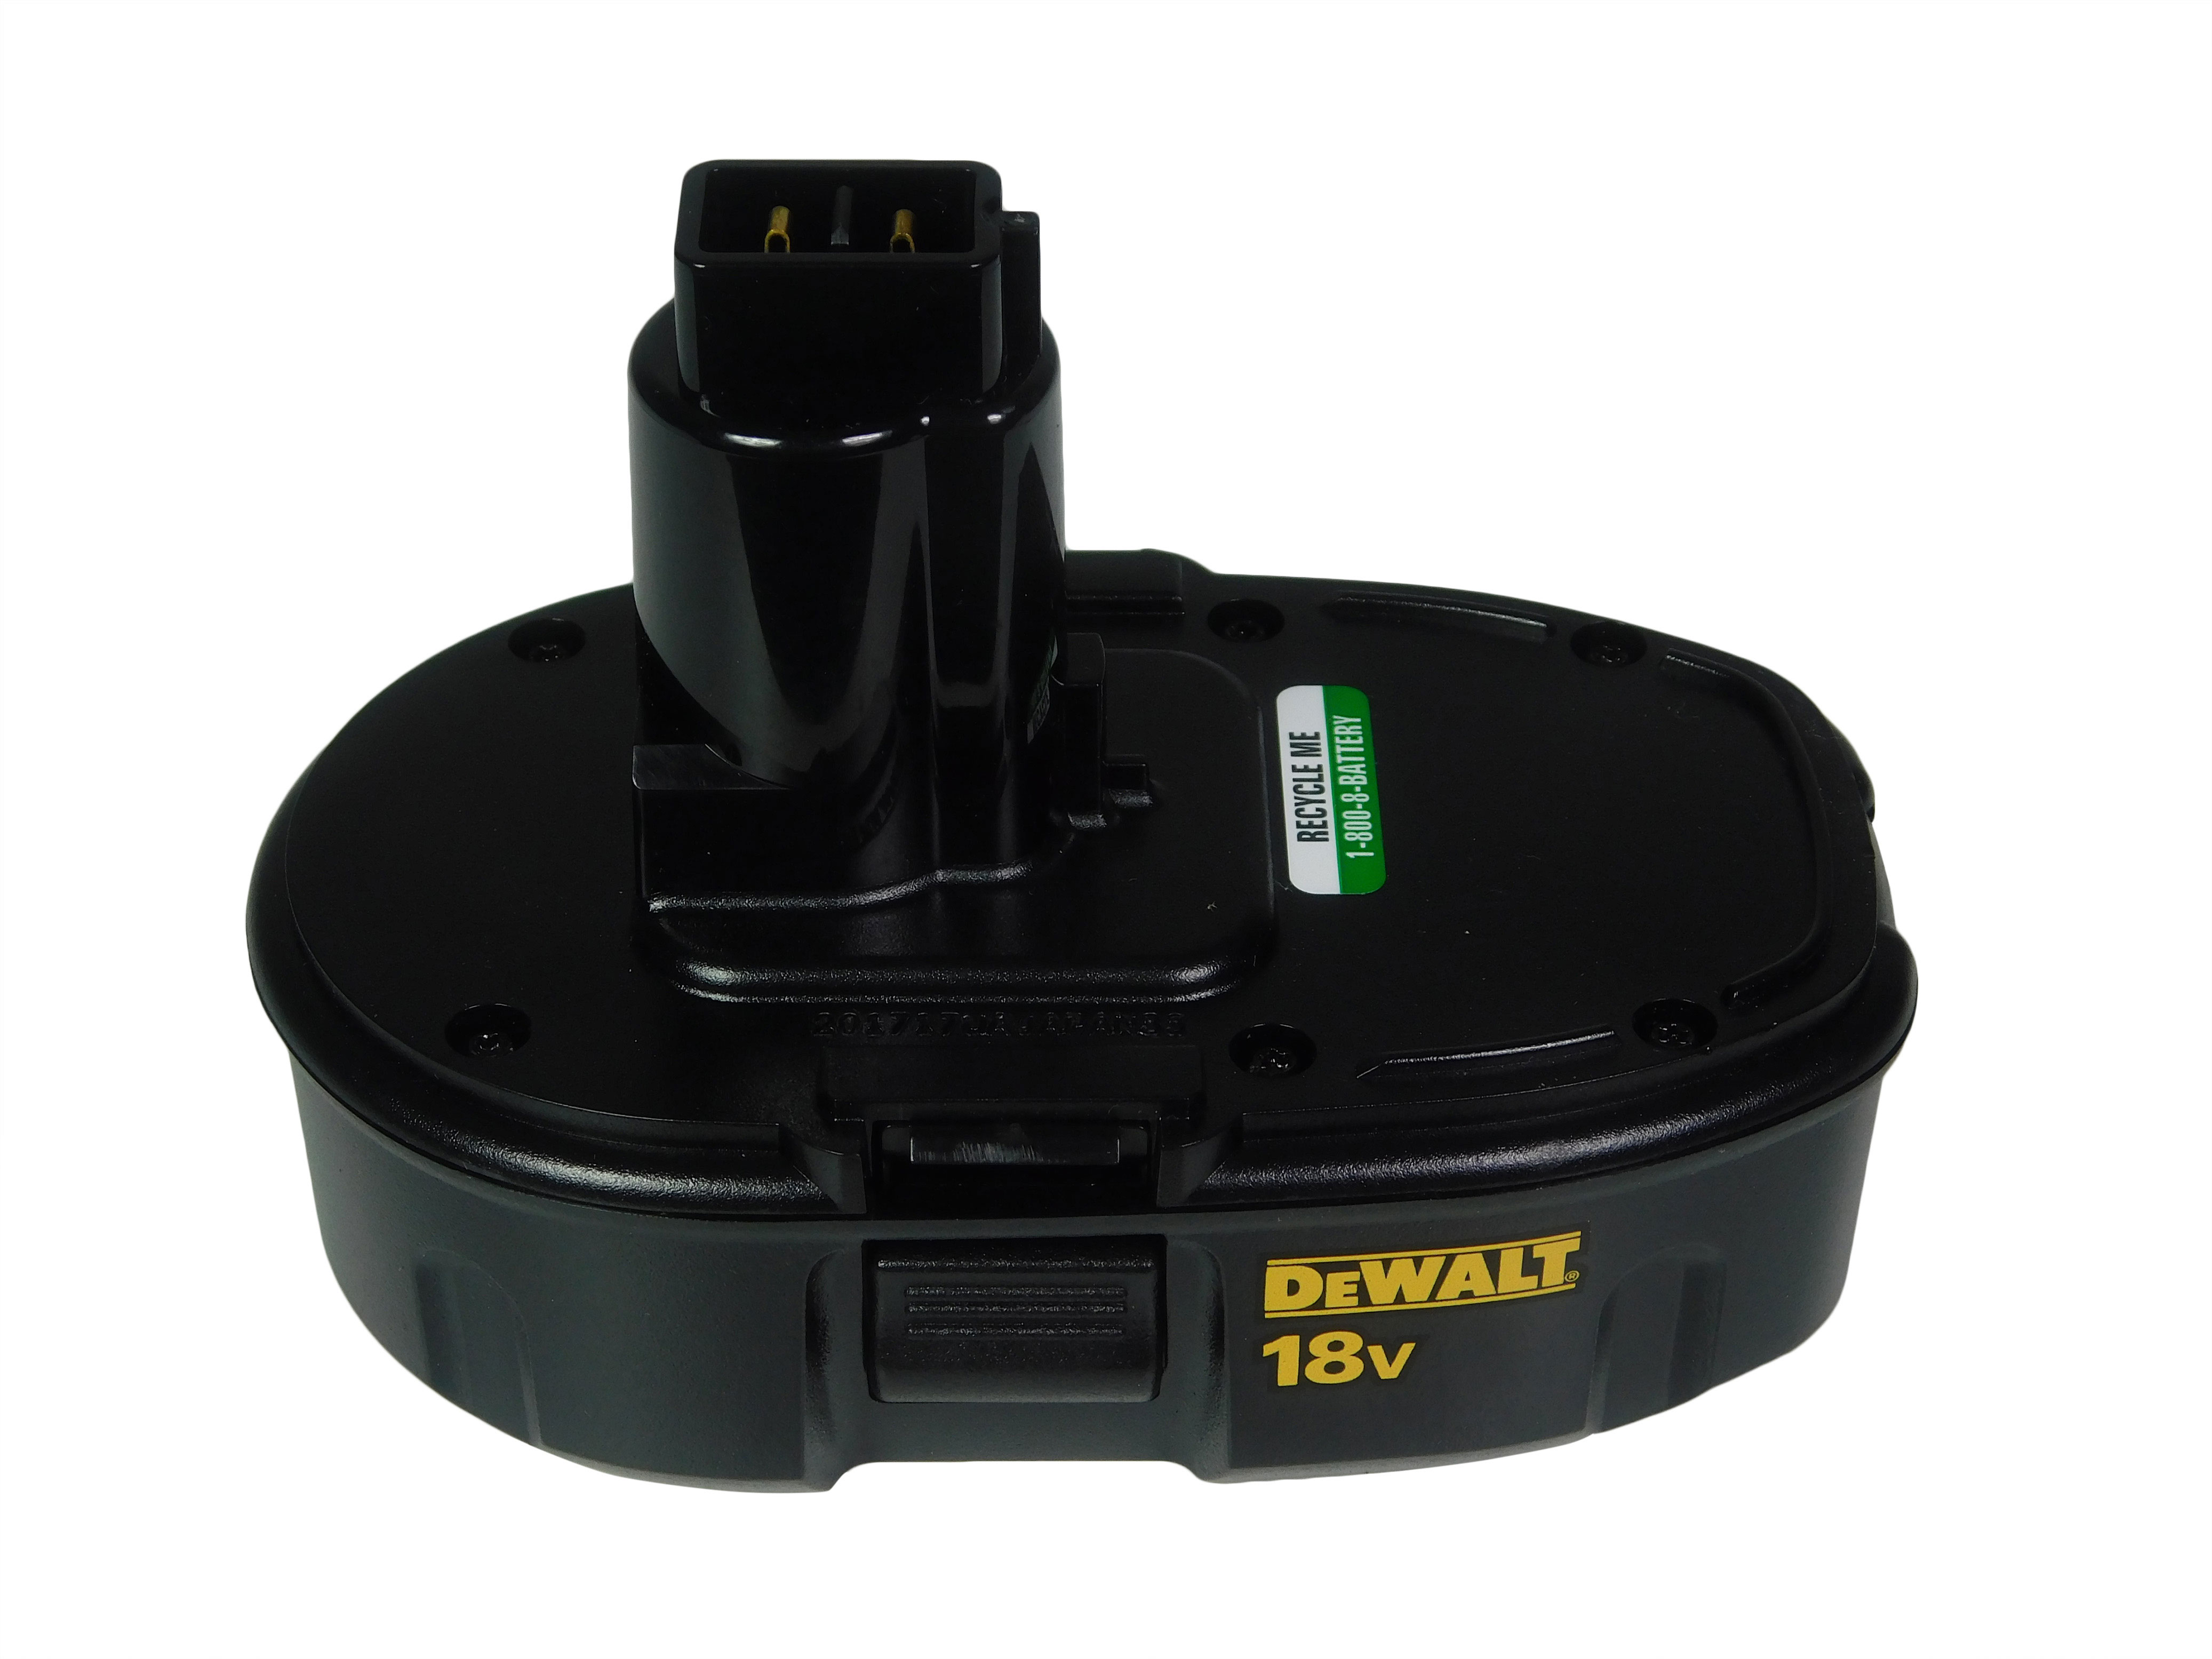 Dewalt-DC9098-18V-Ni-Cad-Battery-Single-Pack-image-15